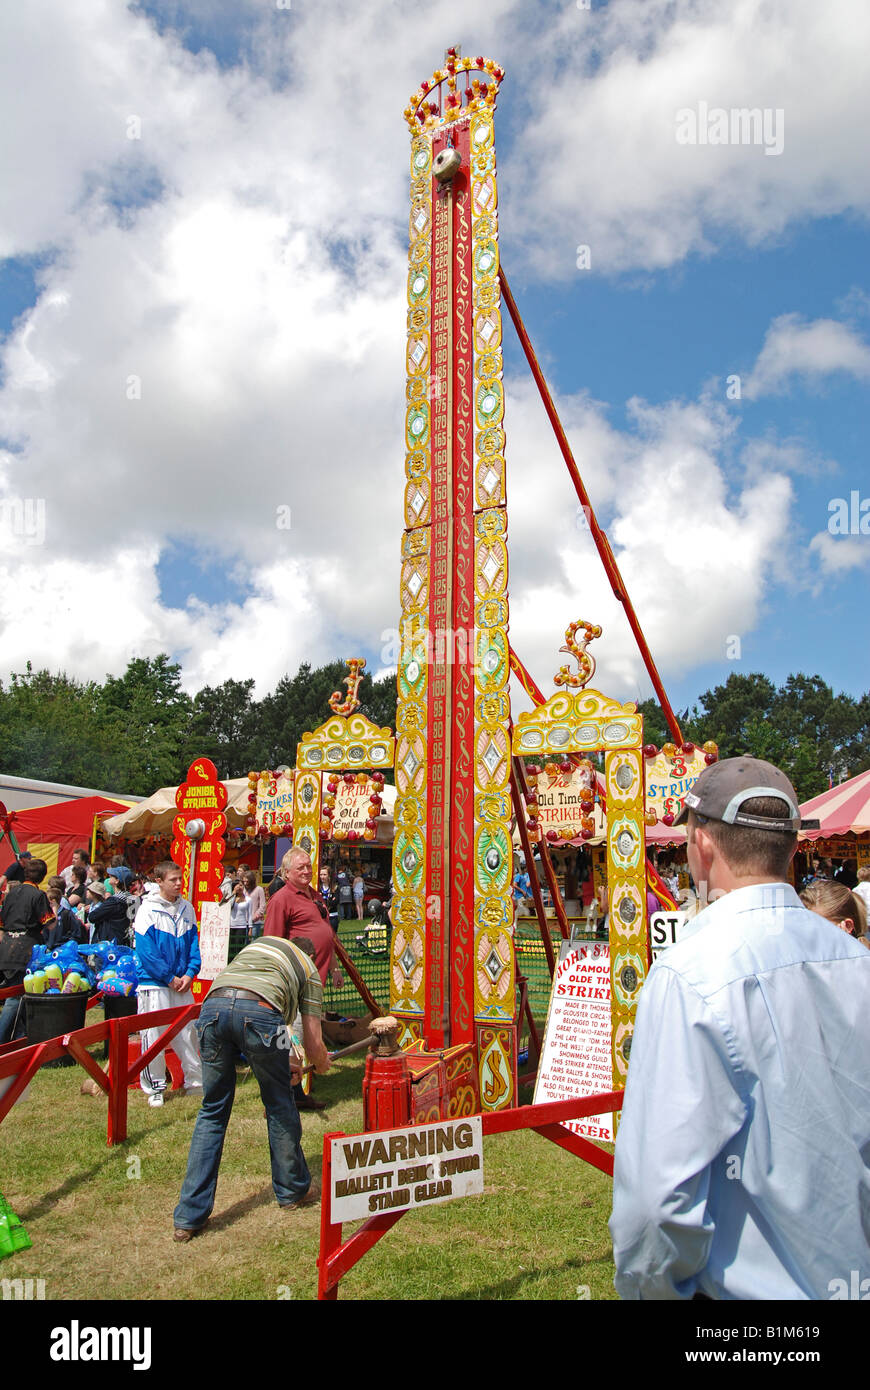 an old style fairground attraction at the royal cornwall show,wadebridge,cornwall,england,uk - Stock Image